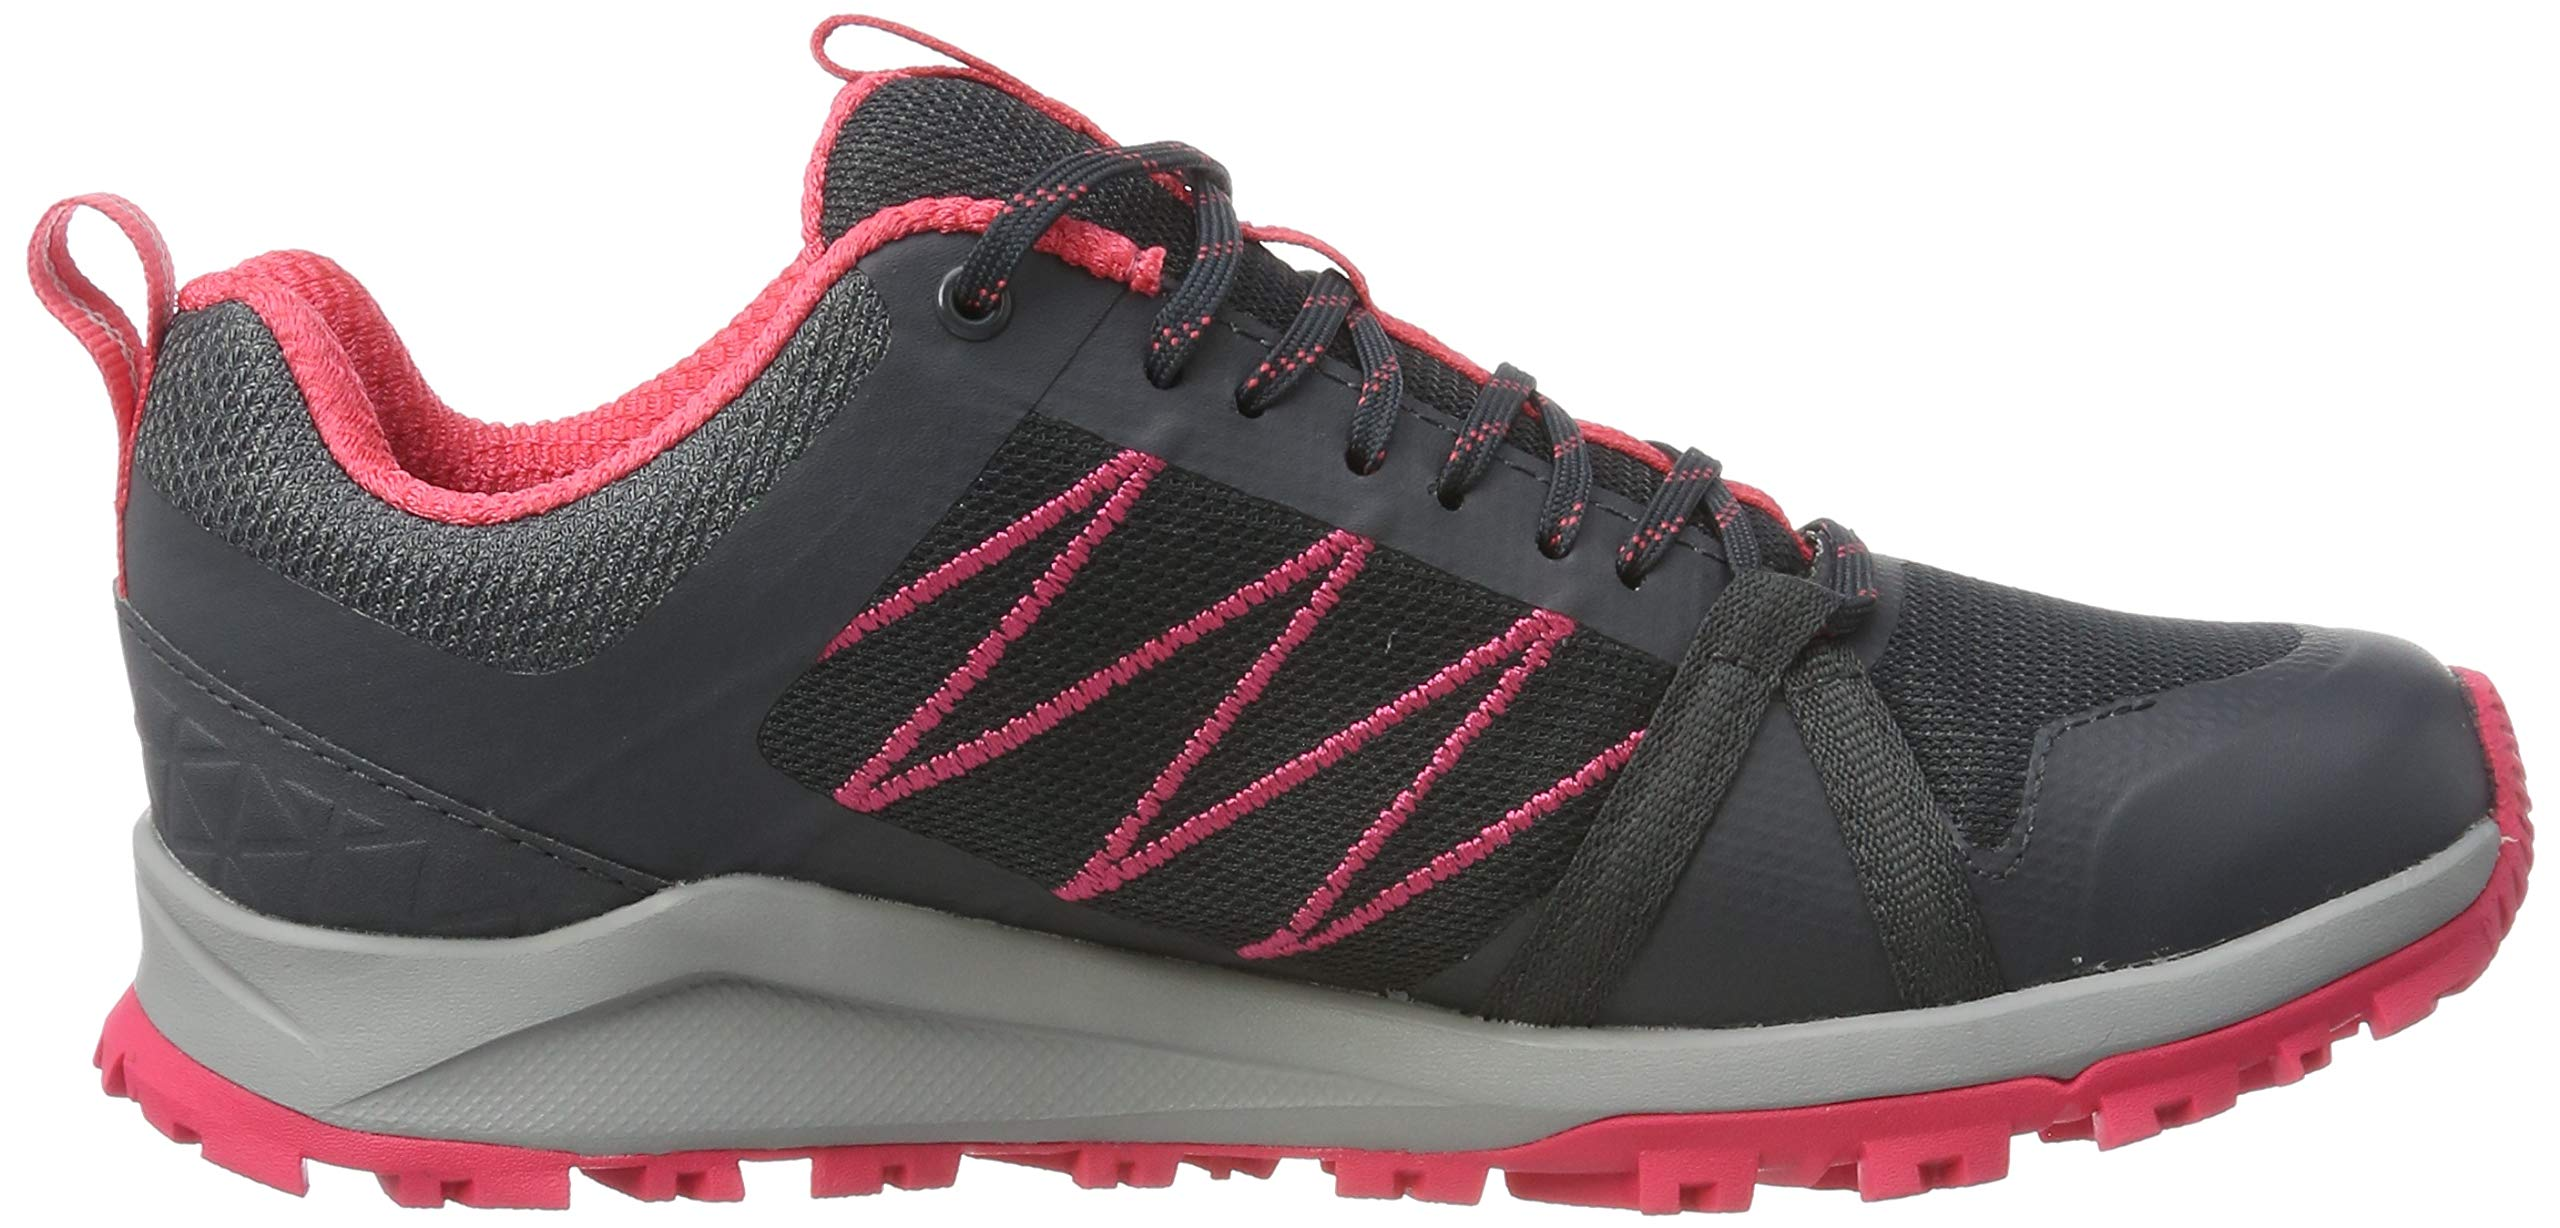 THE NORTH FACE Women's W Litewave Fastpack Ii Low Rise Hiking Boots 6